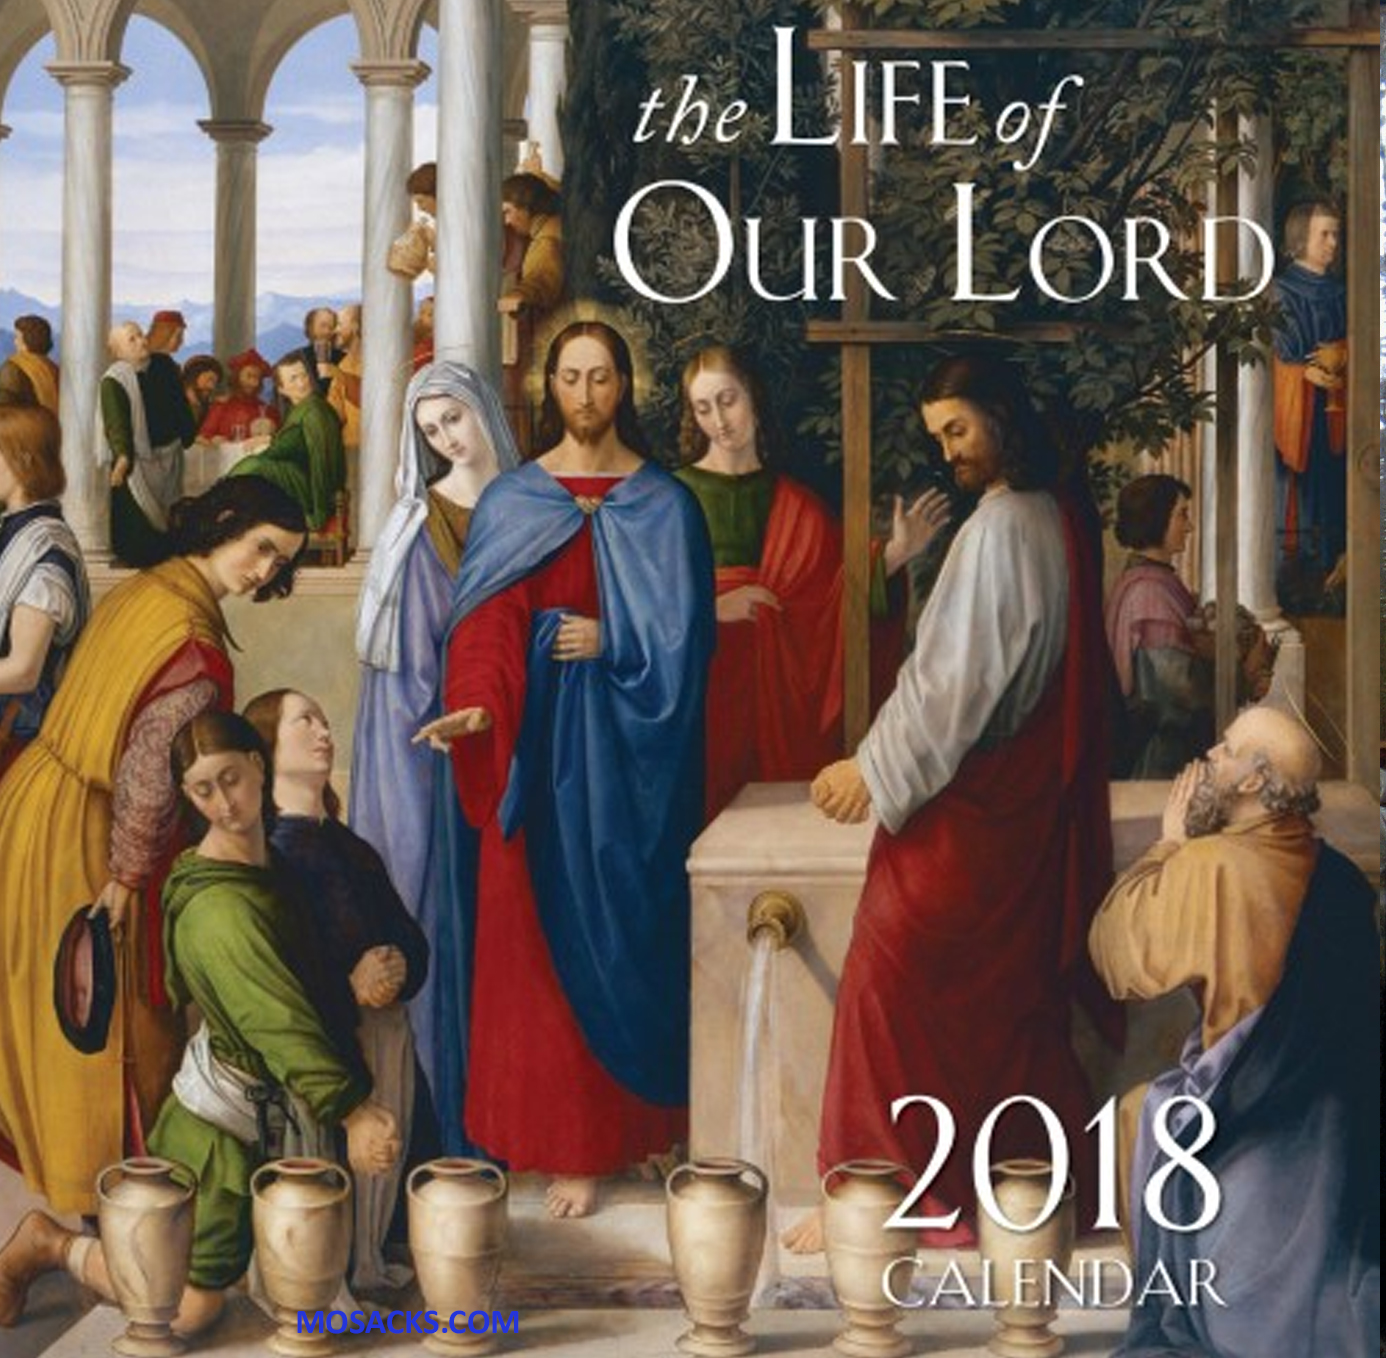 Life of Our Lord 2018 Wall Calendar 812-9781505109955